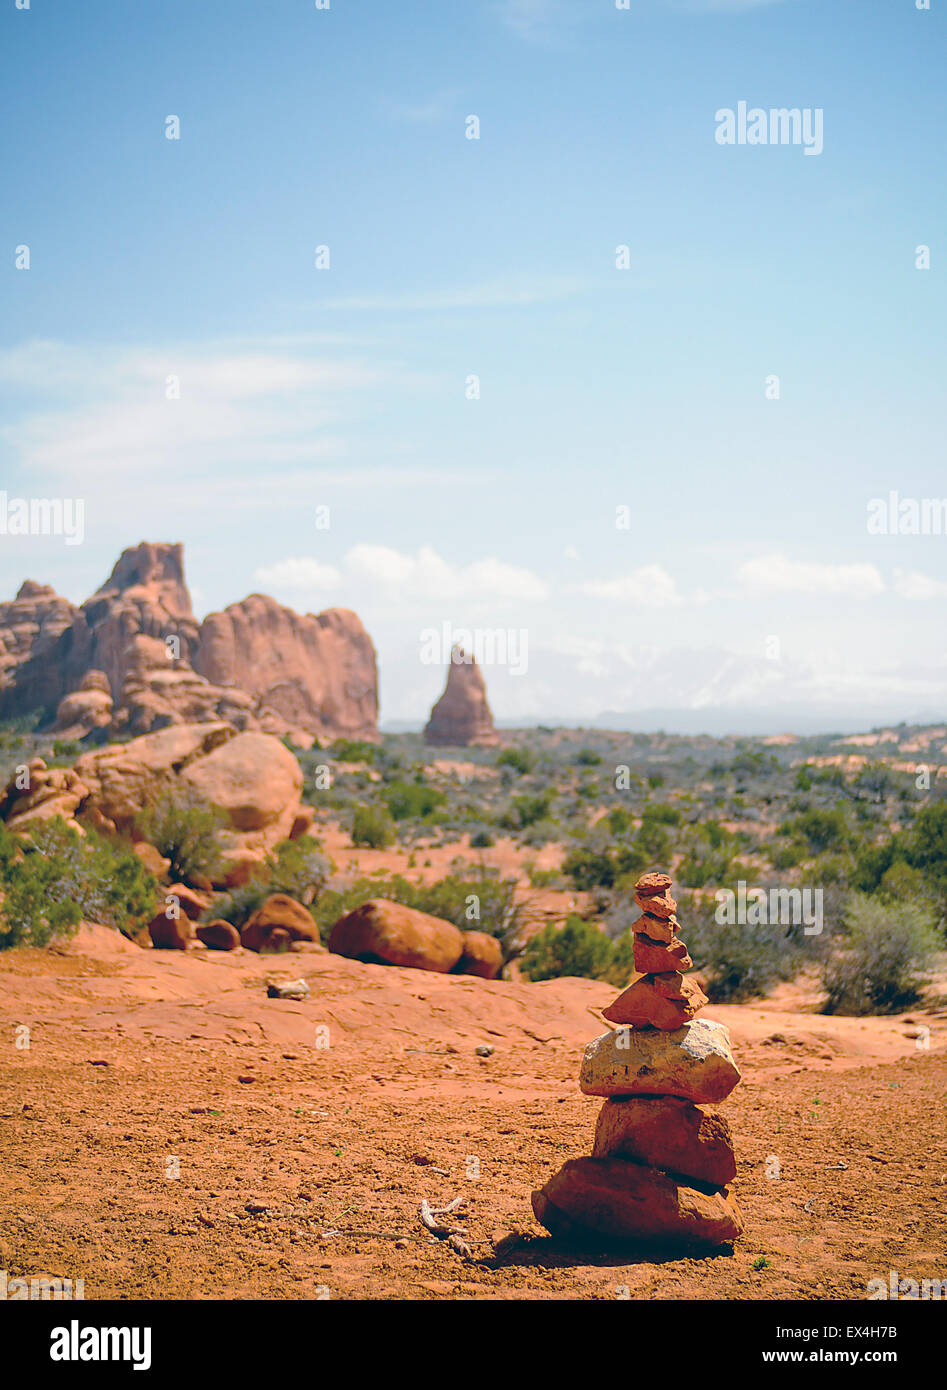 A trail marking cairn is often a welcome sight in the Utah desert, Arches National Park, Utah. - Stock Image